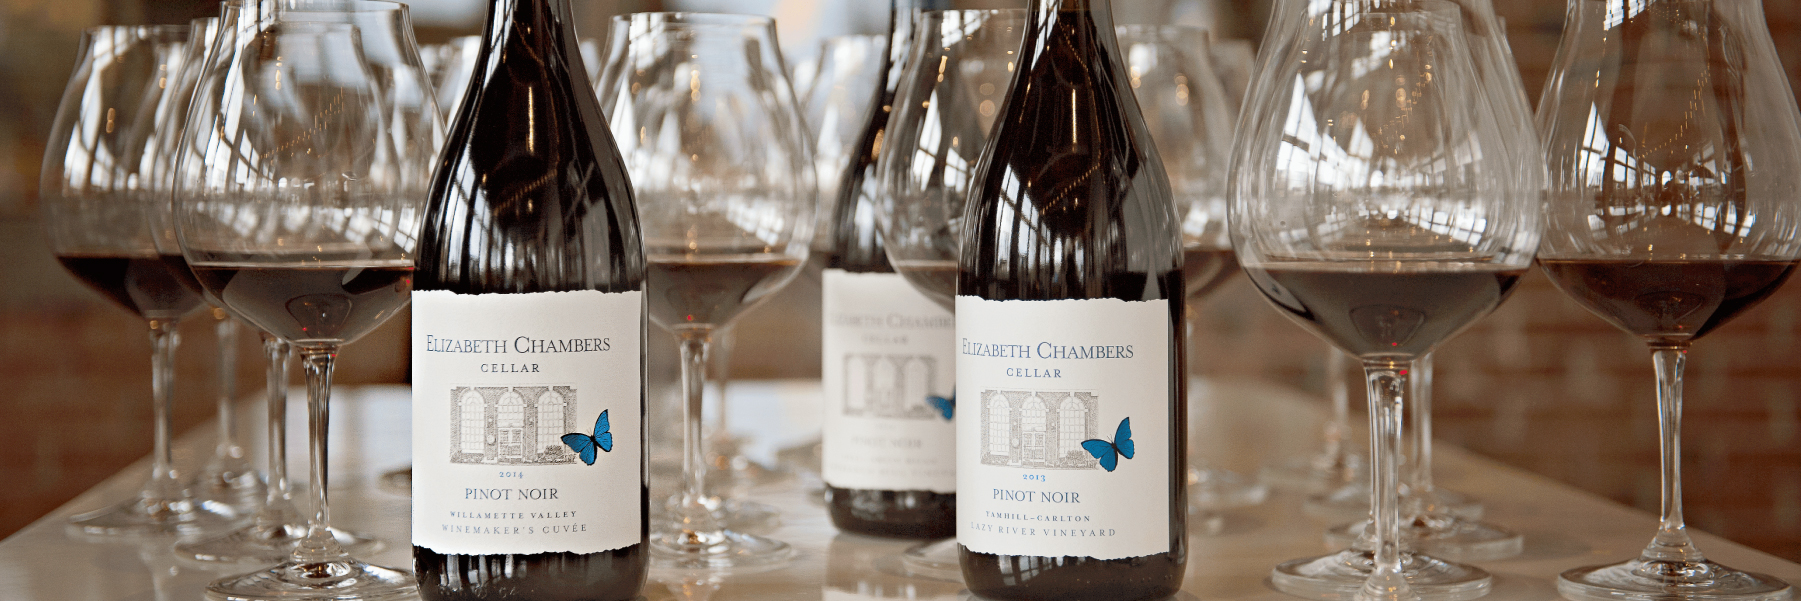 The Pinot Noirs of Elizabeth Chambers Cellar in McMinnville, Oregon